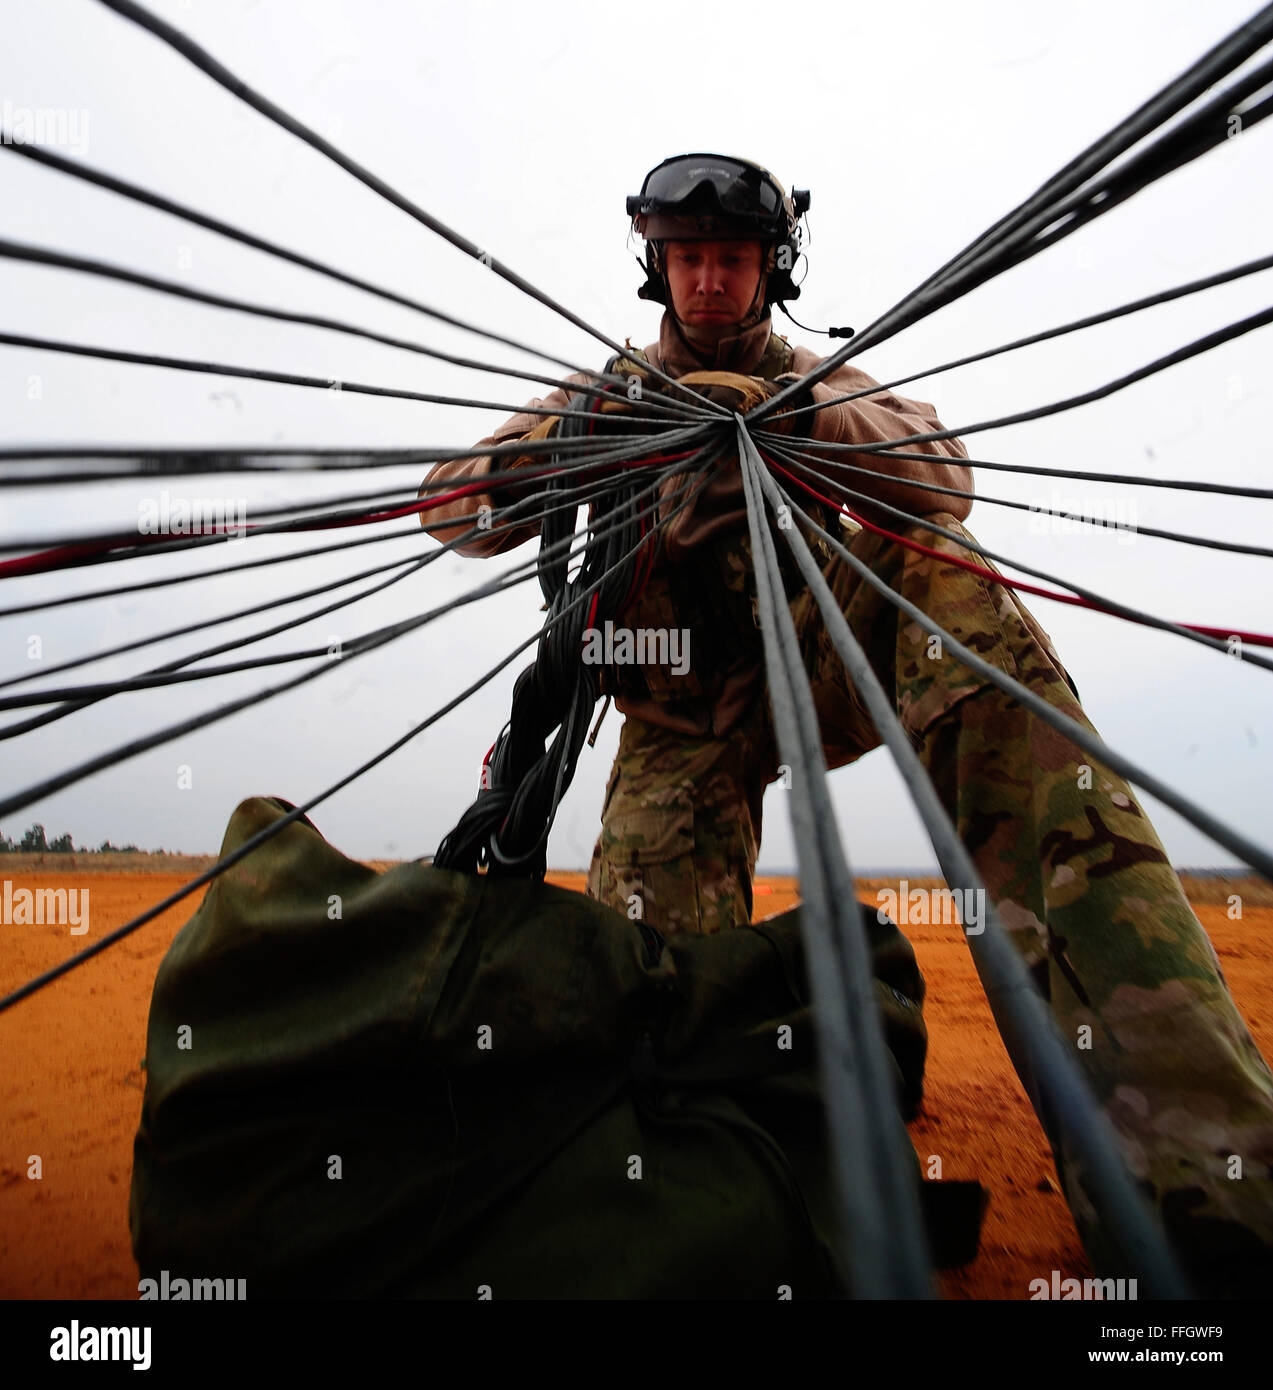 Senior Airman Oren Palmer with the 21st Special Tactics Squadron, pulls in his parachute after a jump at Pope Field, - Stock Image